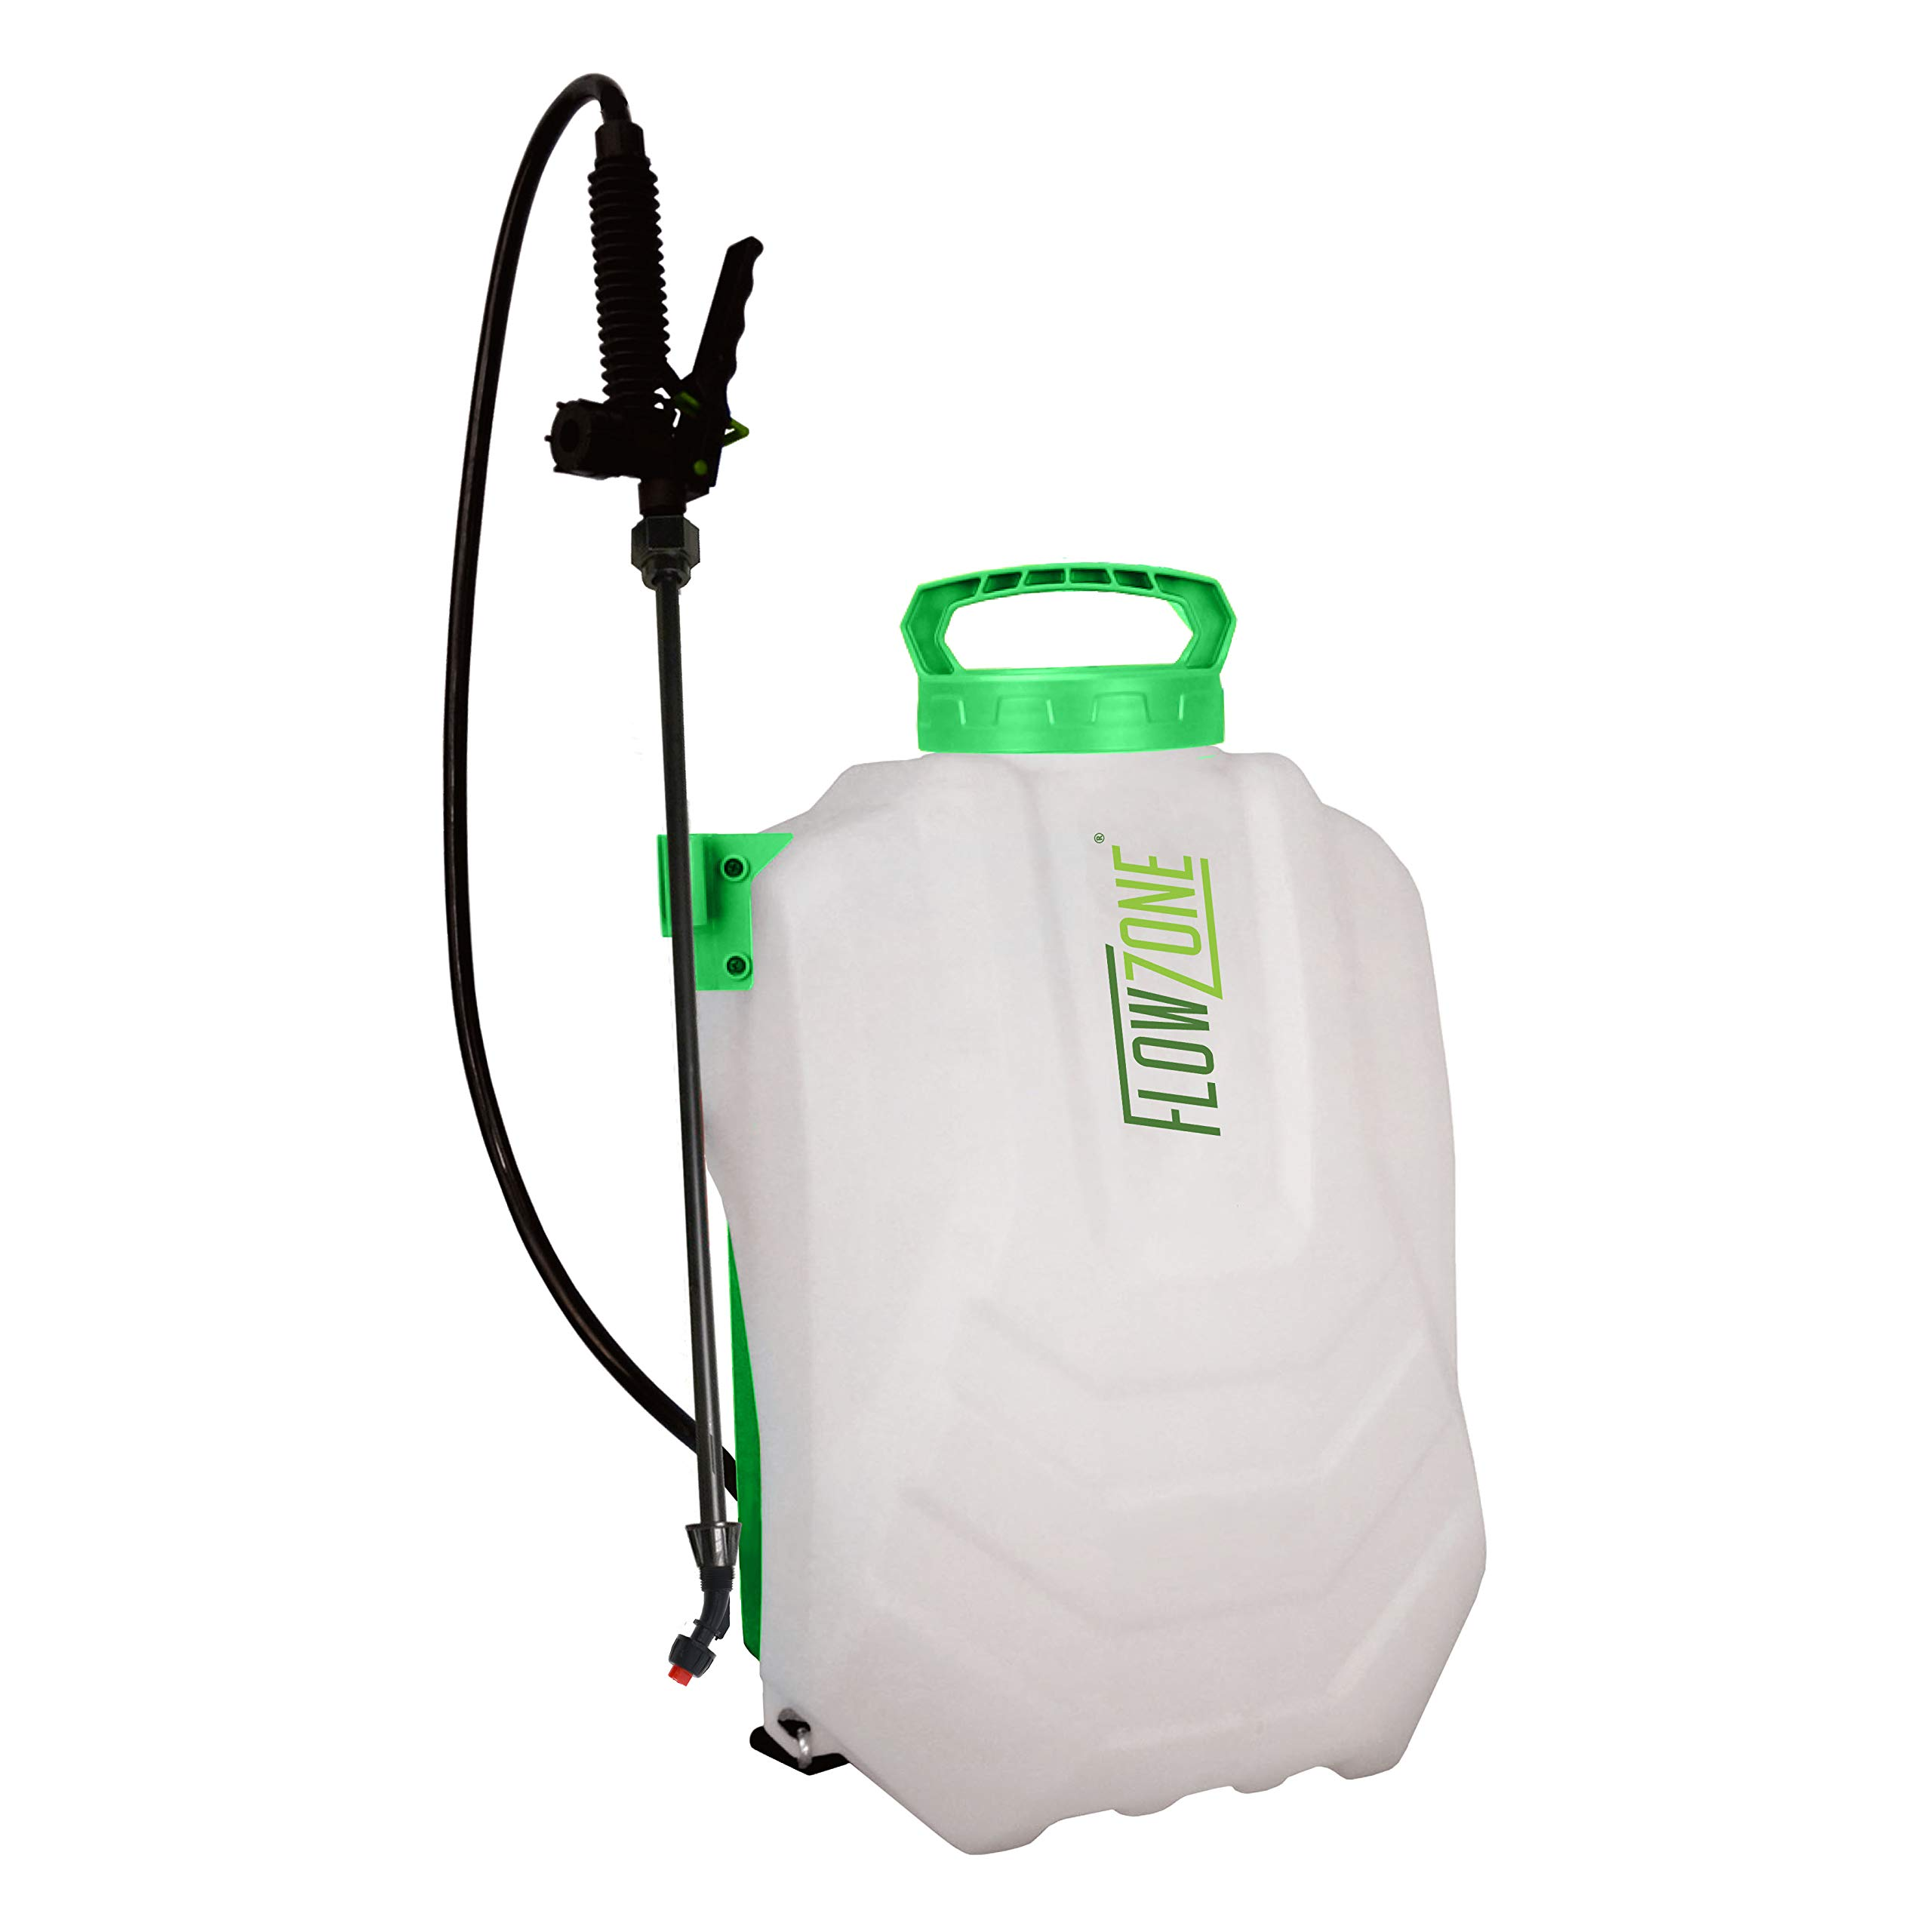 FlowZone Tornado 4-Gallon Multi-Use Continuous-Pressure 18V/2.6Ah Lithium-Ion Backpack Sprayer